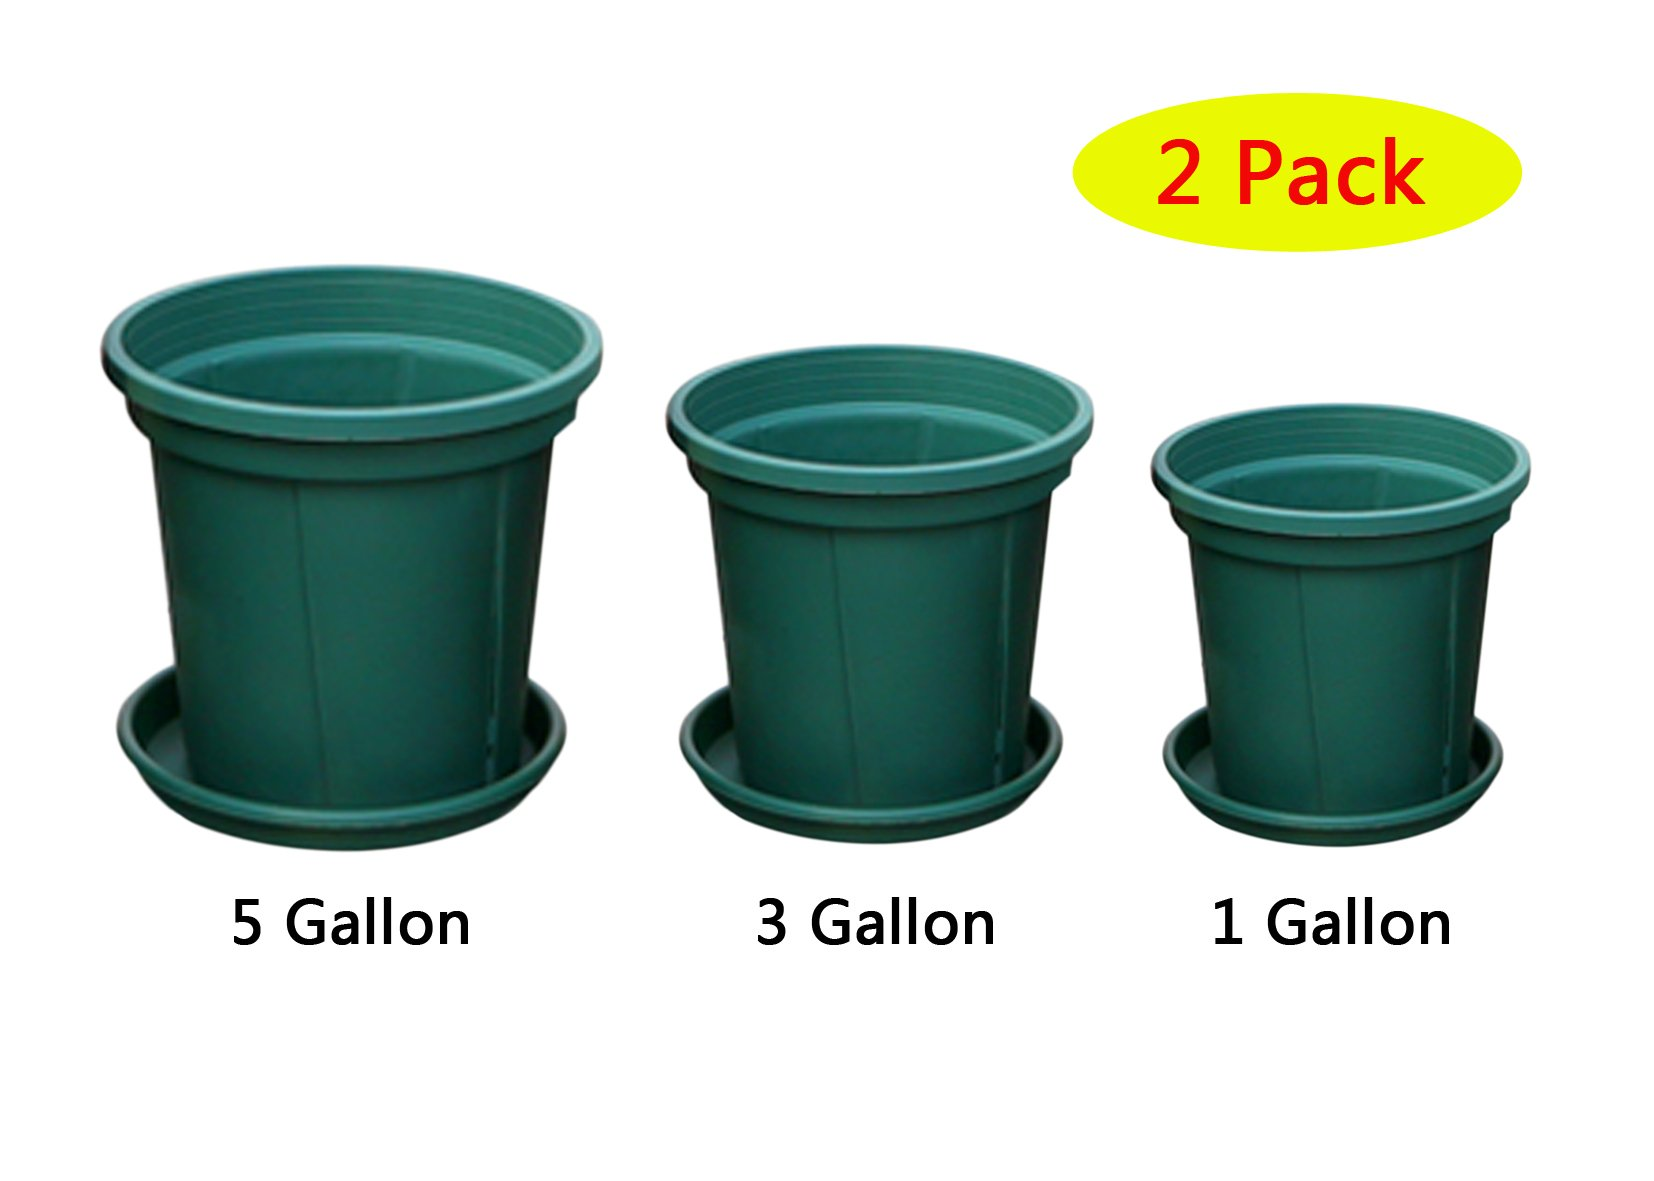 12Pcs Premium Plastic Nursery Planter Pot Container with Saucer For Balcony Vegetables Basin Grow or Indoor / Outdoor Garden Pots (6Pcs Plant Pots + 6Pcs Saucer - Two of them are About 1Gallon ,3Gall by coisound 1688